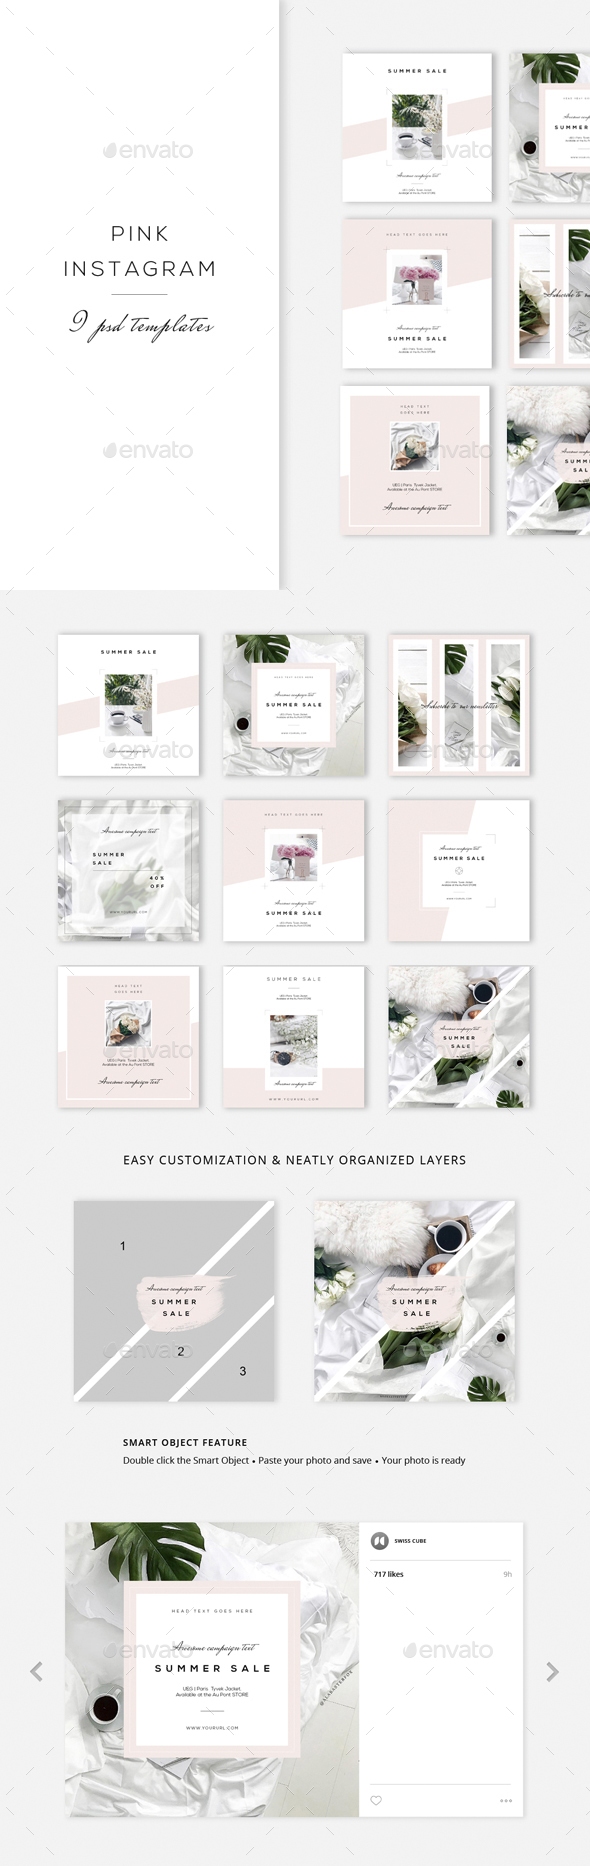 Pink Instagram - 9 Designs - Social Media Web Elements